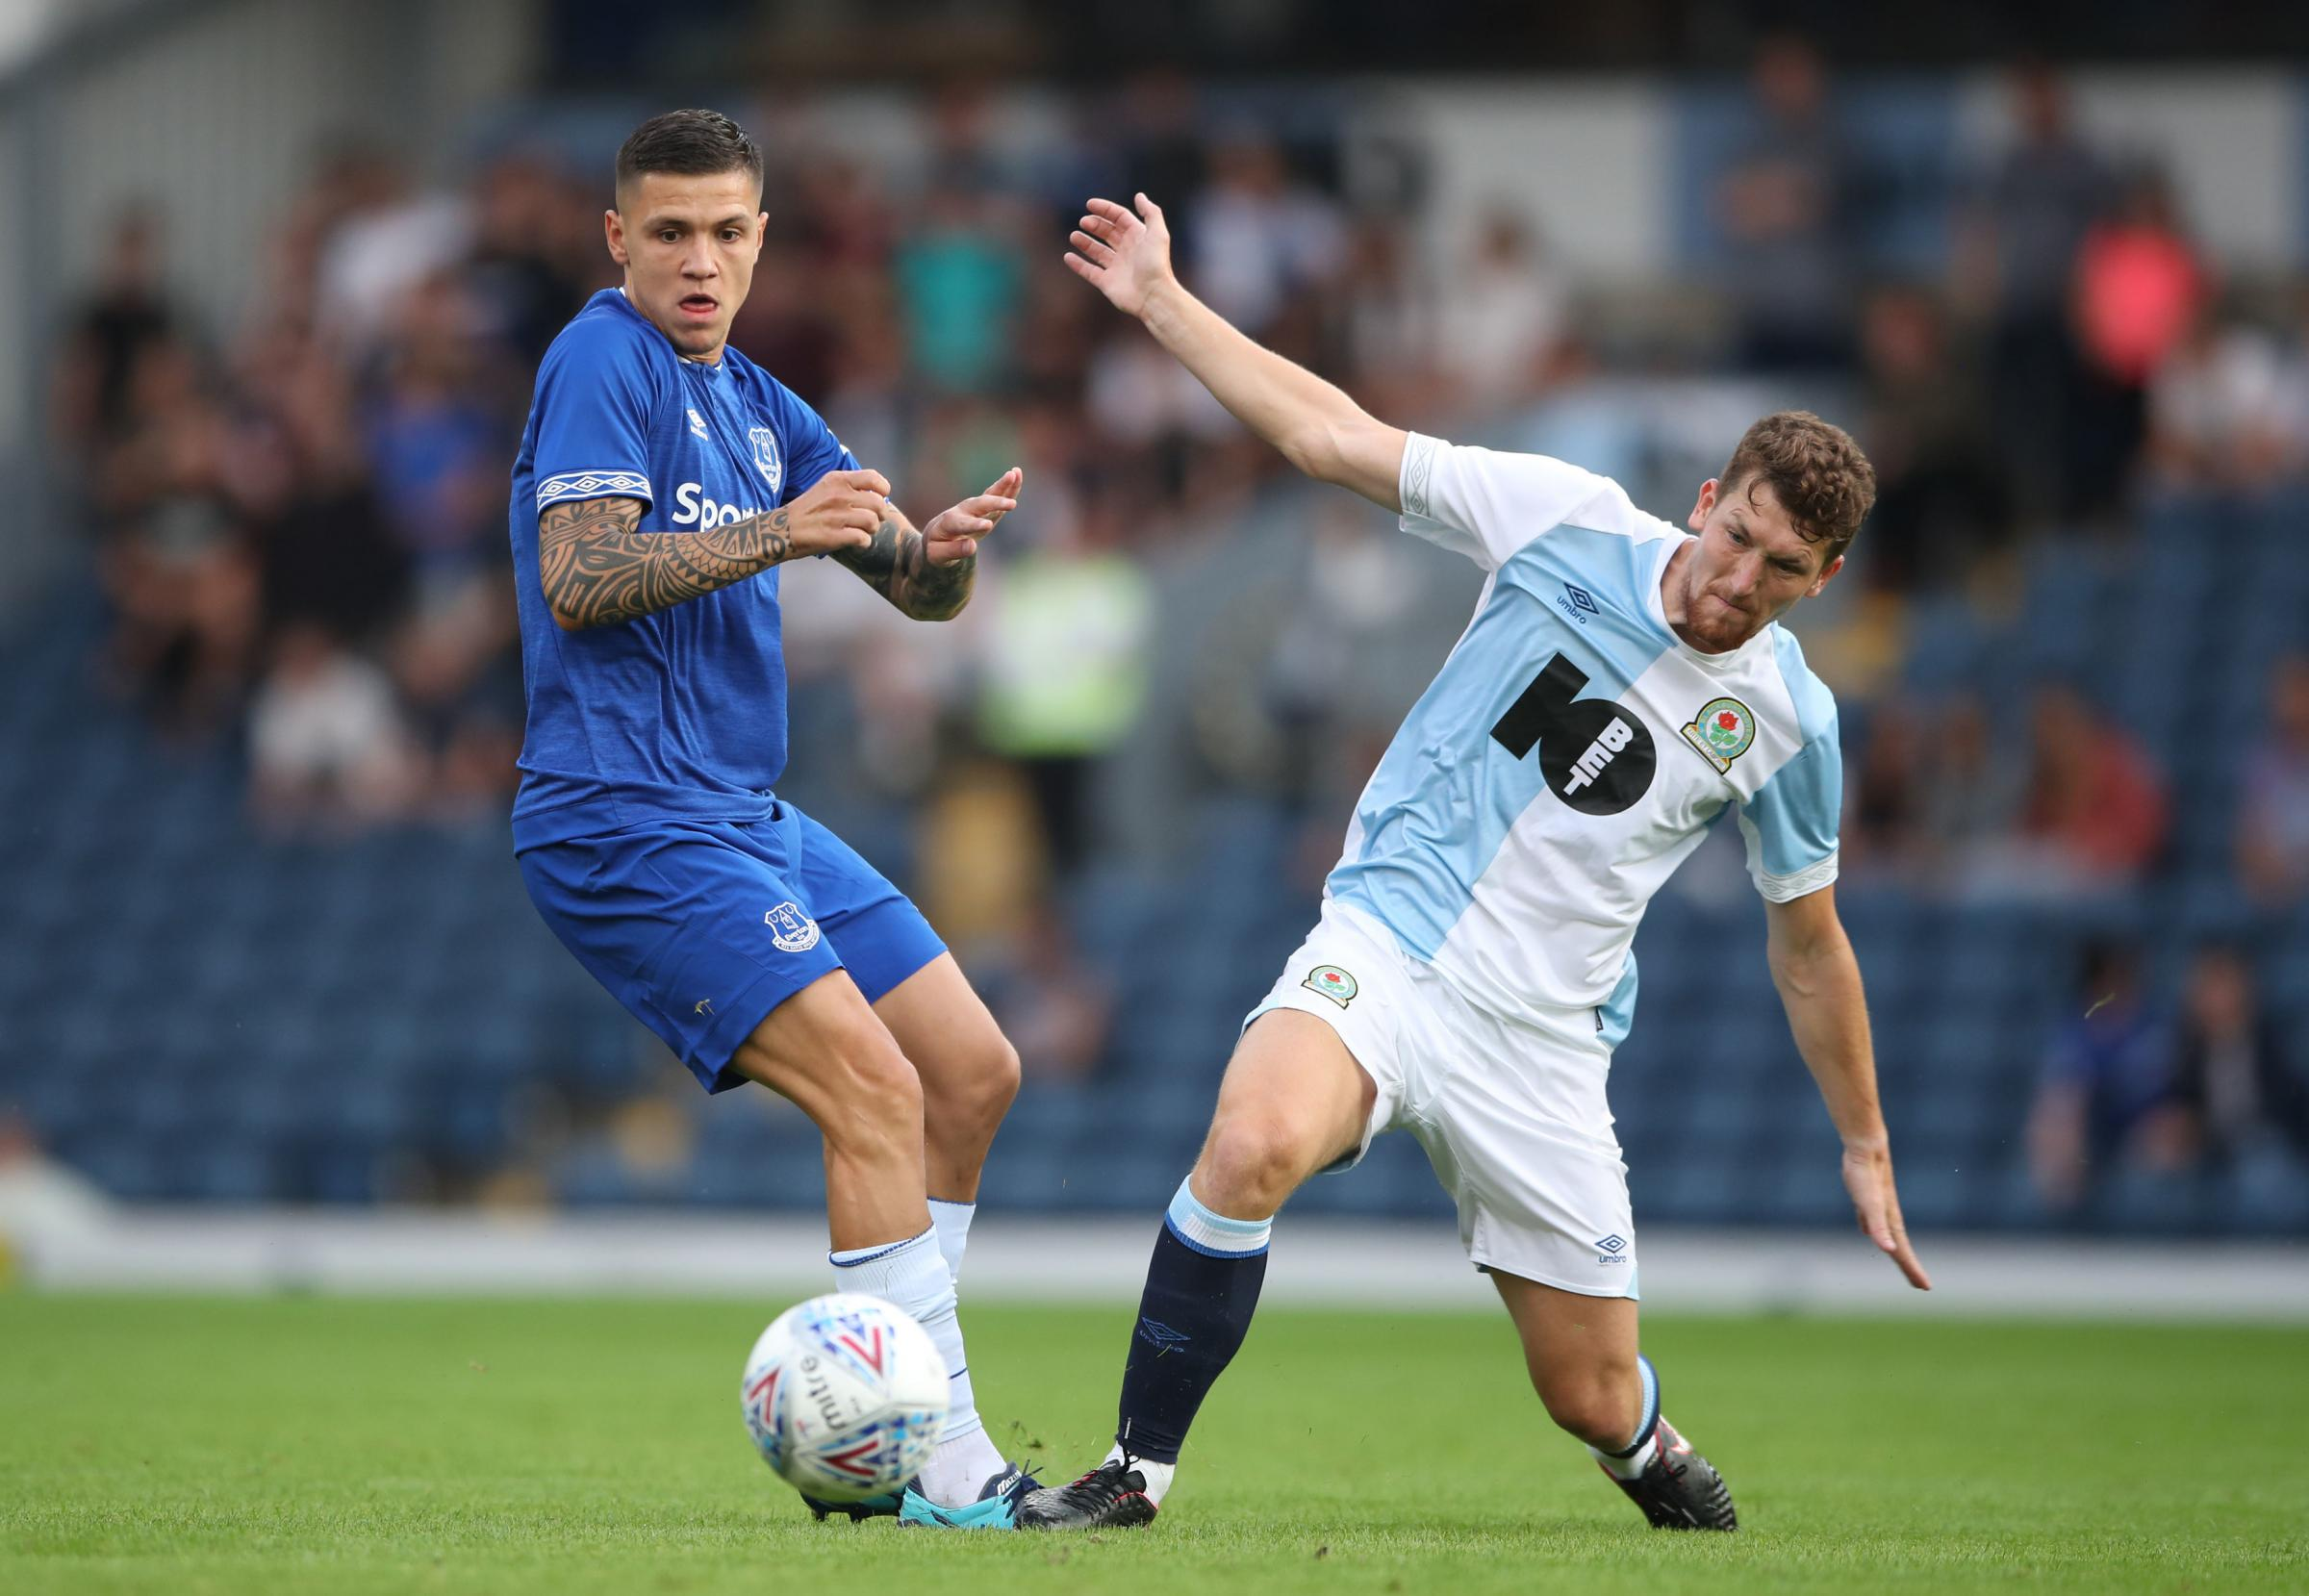 Everton's Muhamed Besic battles with Blackburn Rovers' Richie Smallwood during a pre-season friendly match at Ewood Park, Blackburn. PRESS ASSOCIATION Photo. Picture date: Thursday July 26, 2018. Photo credit should read: Nick Potts/PA Wire. EDITO